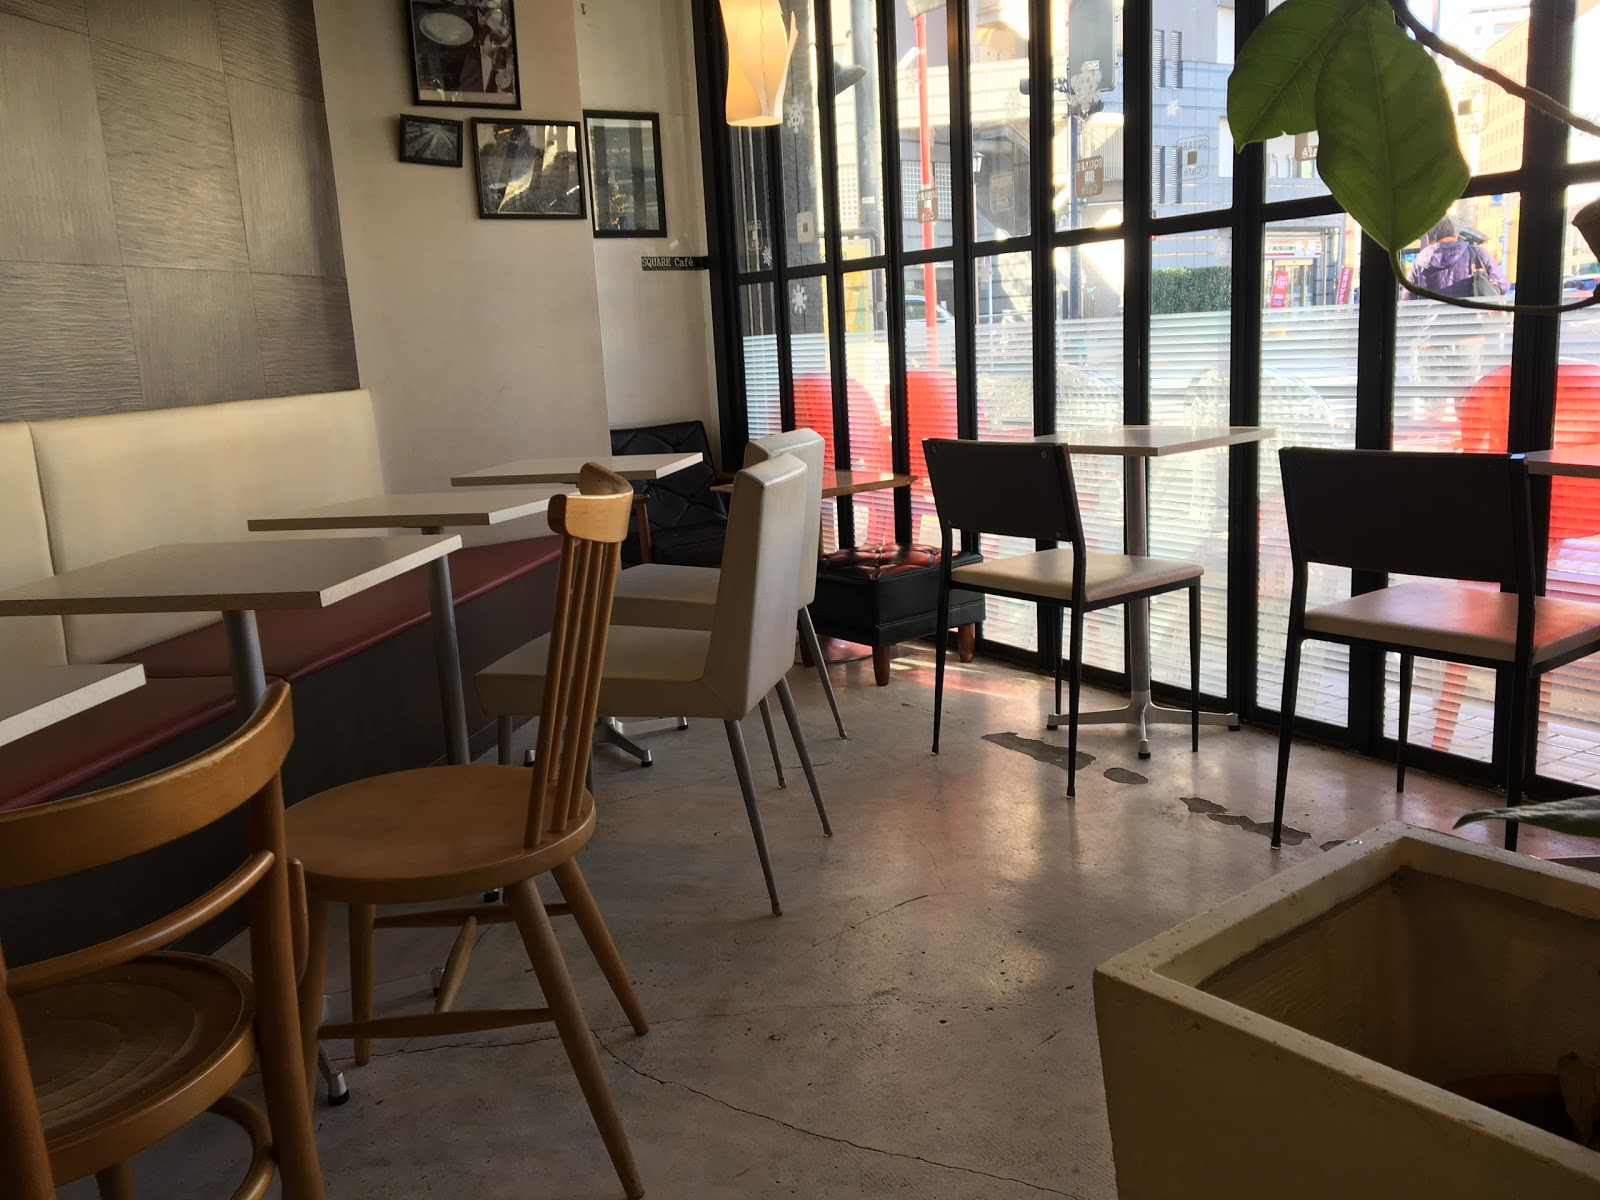 SQUARE Cafe 東日本橋 本店にて